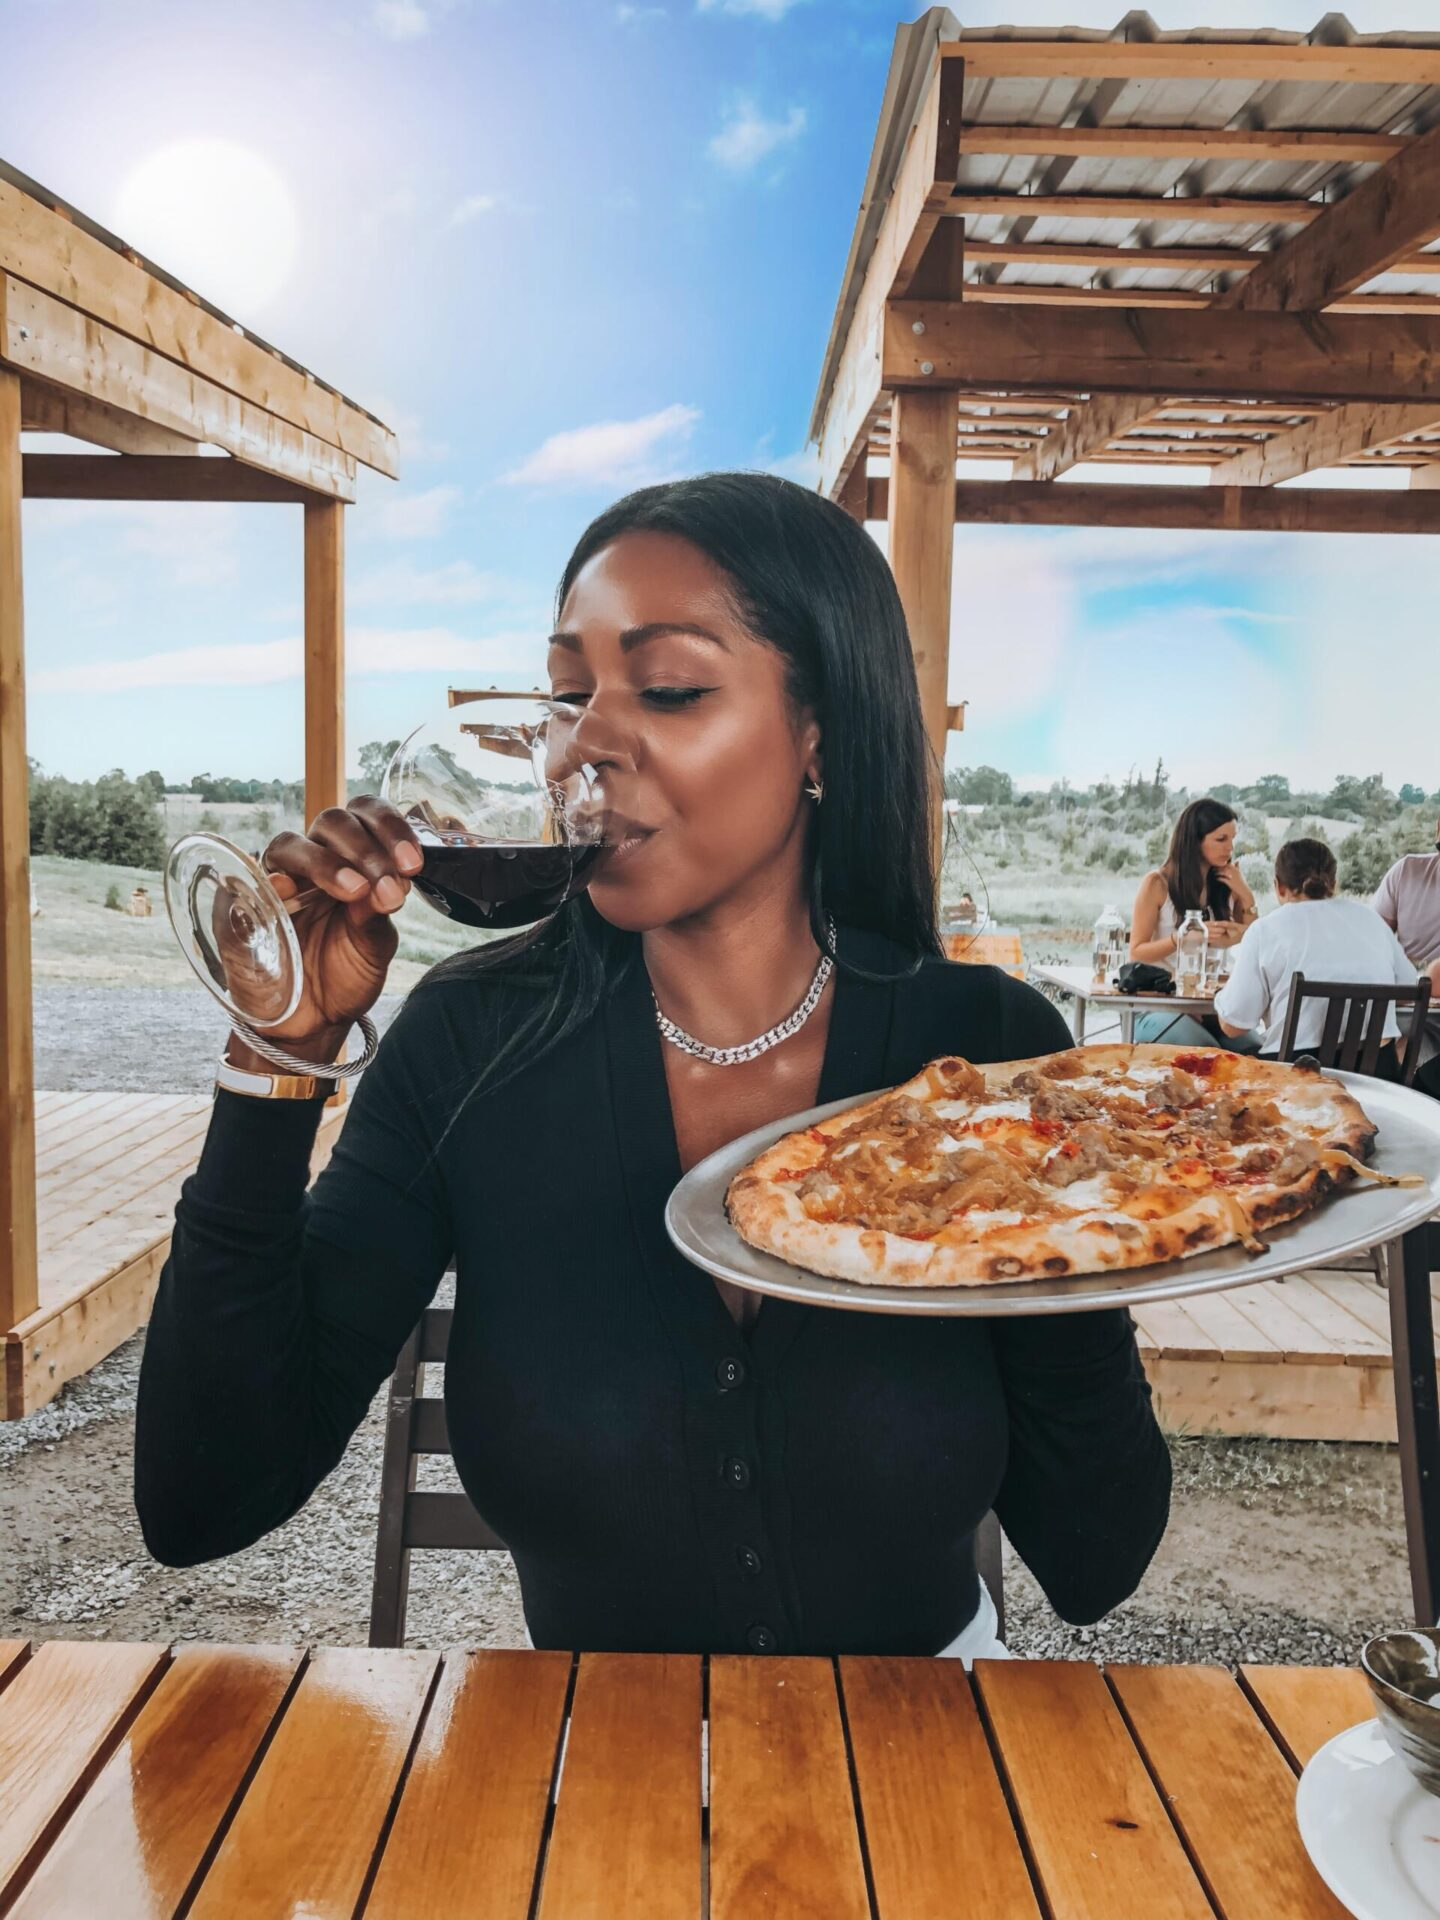 Dominique Baker eating pizza and wine at Norman Hardie Winery